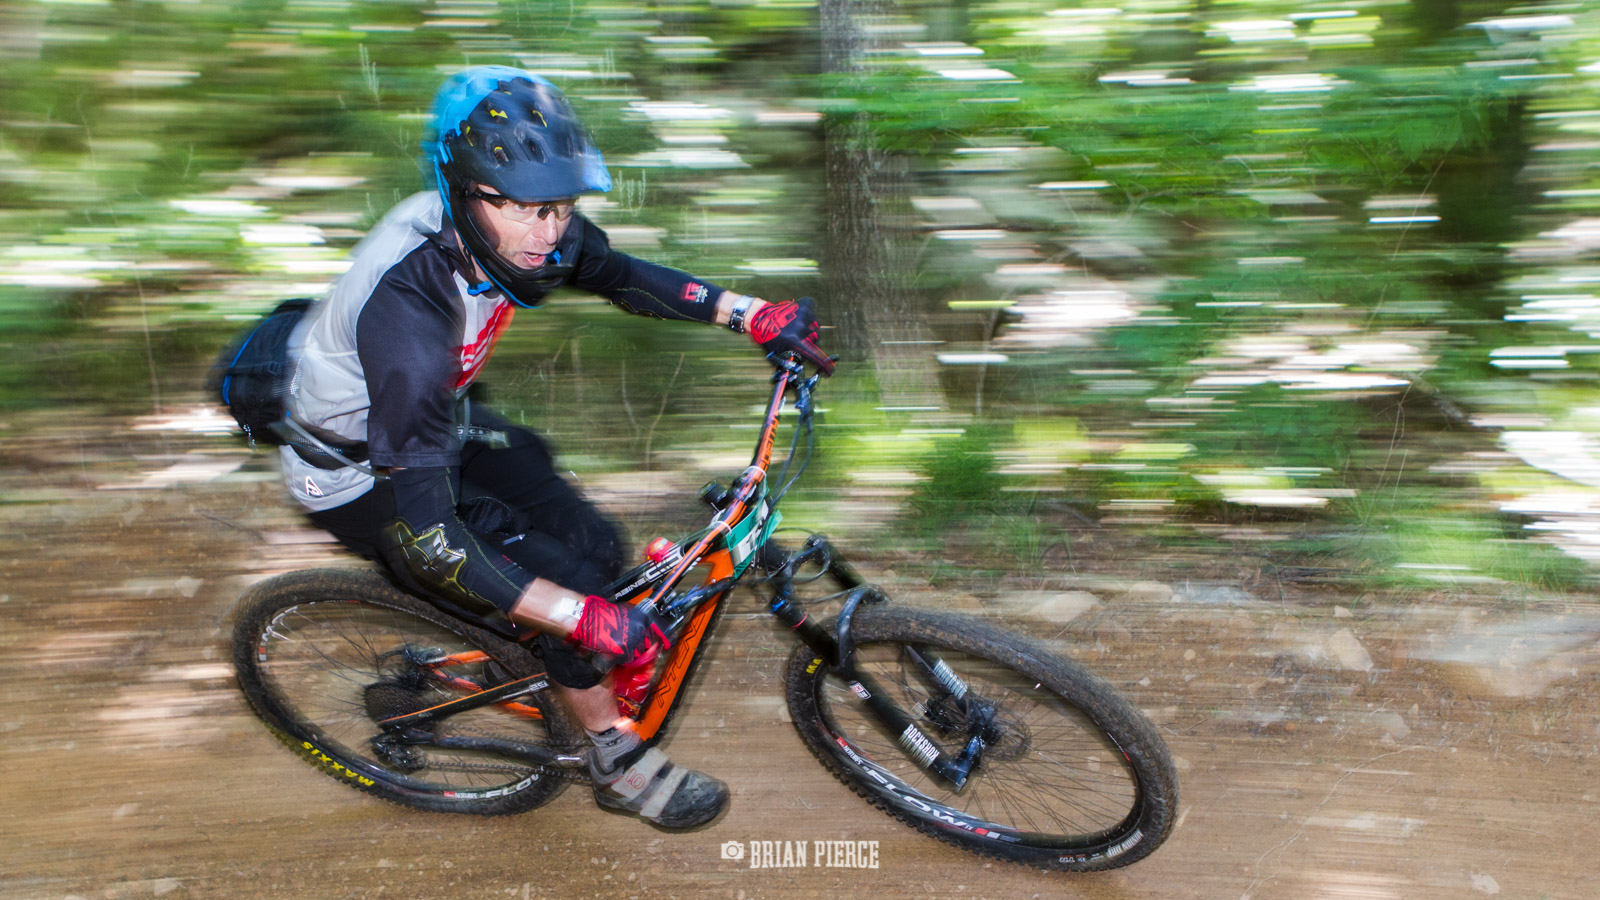 Panning shot for the win.